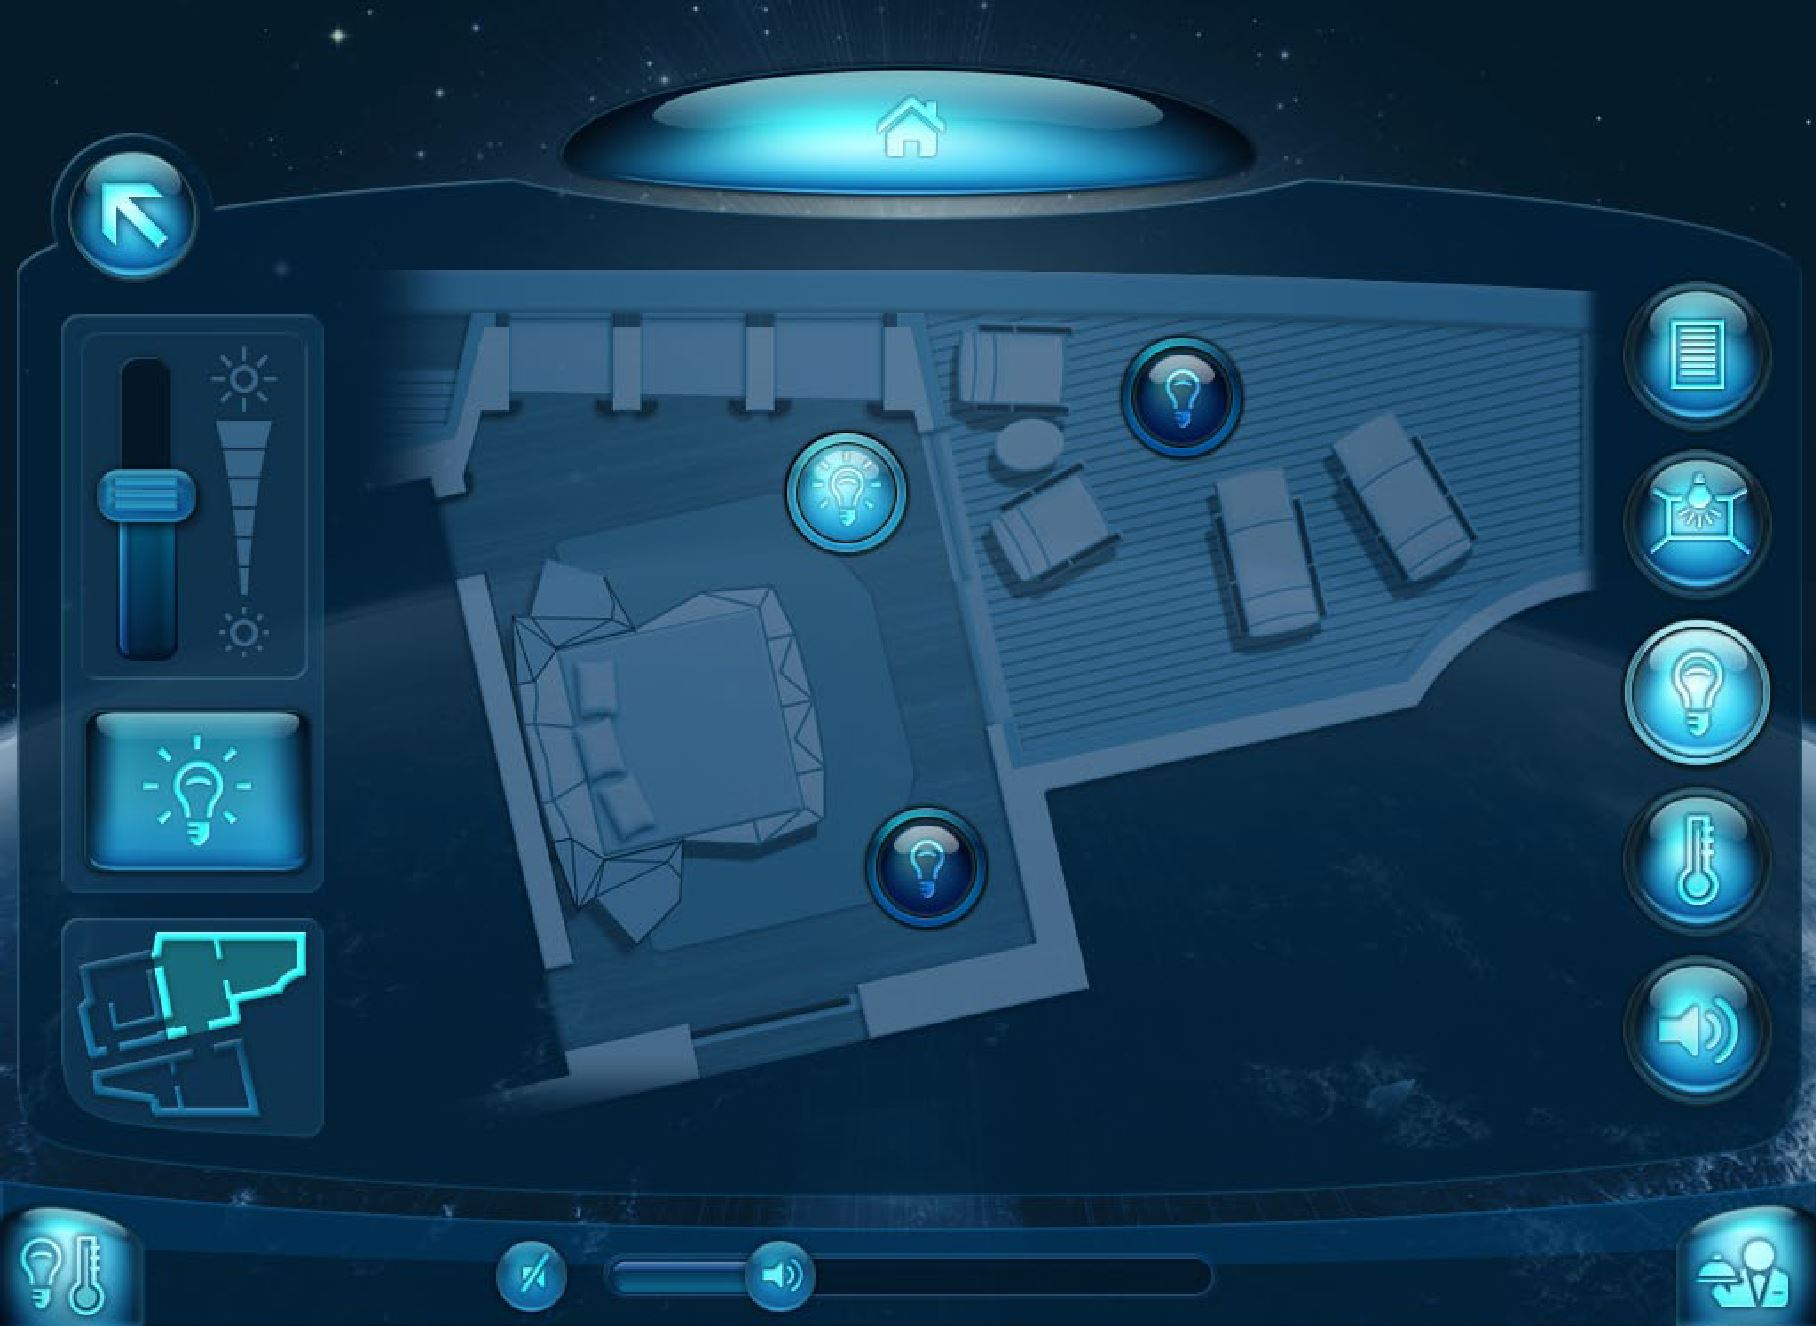 Room Control Interface Overview